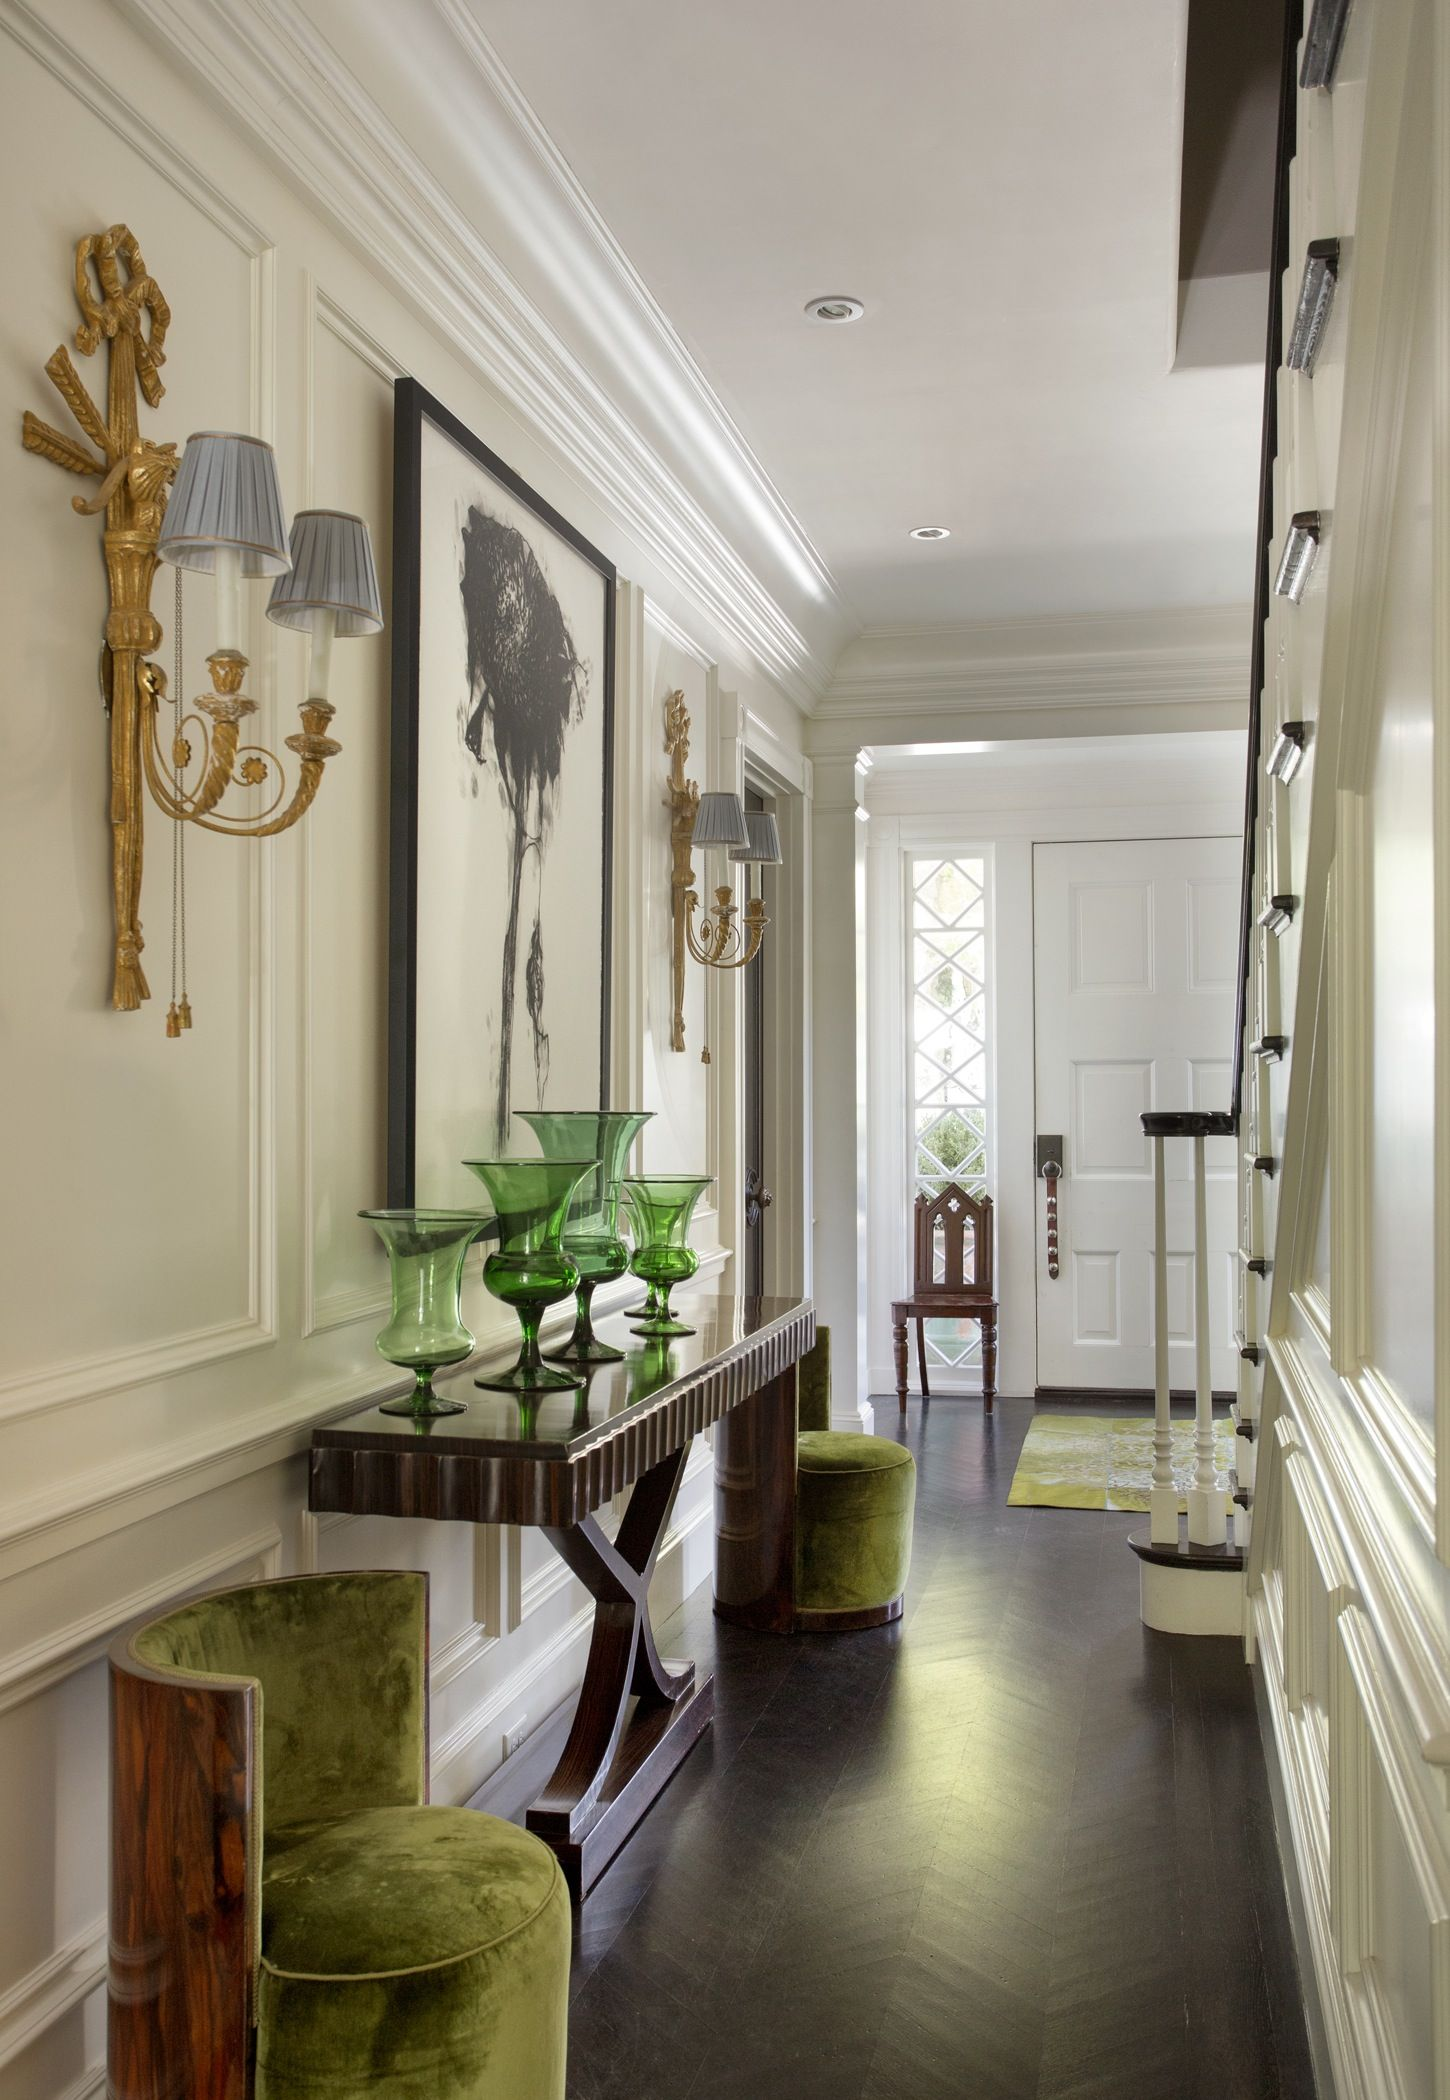 Contemporary hallway ideas  Entry in Harvard Square with Herringbone Floors by Kristin Paton